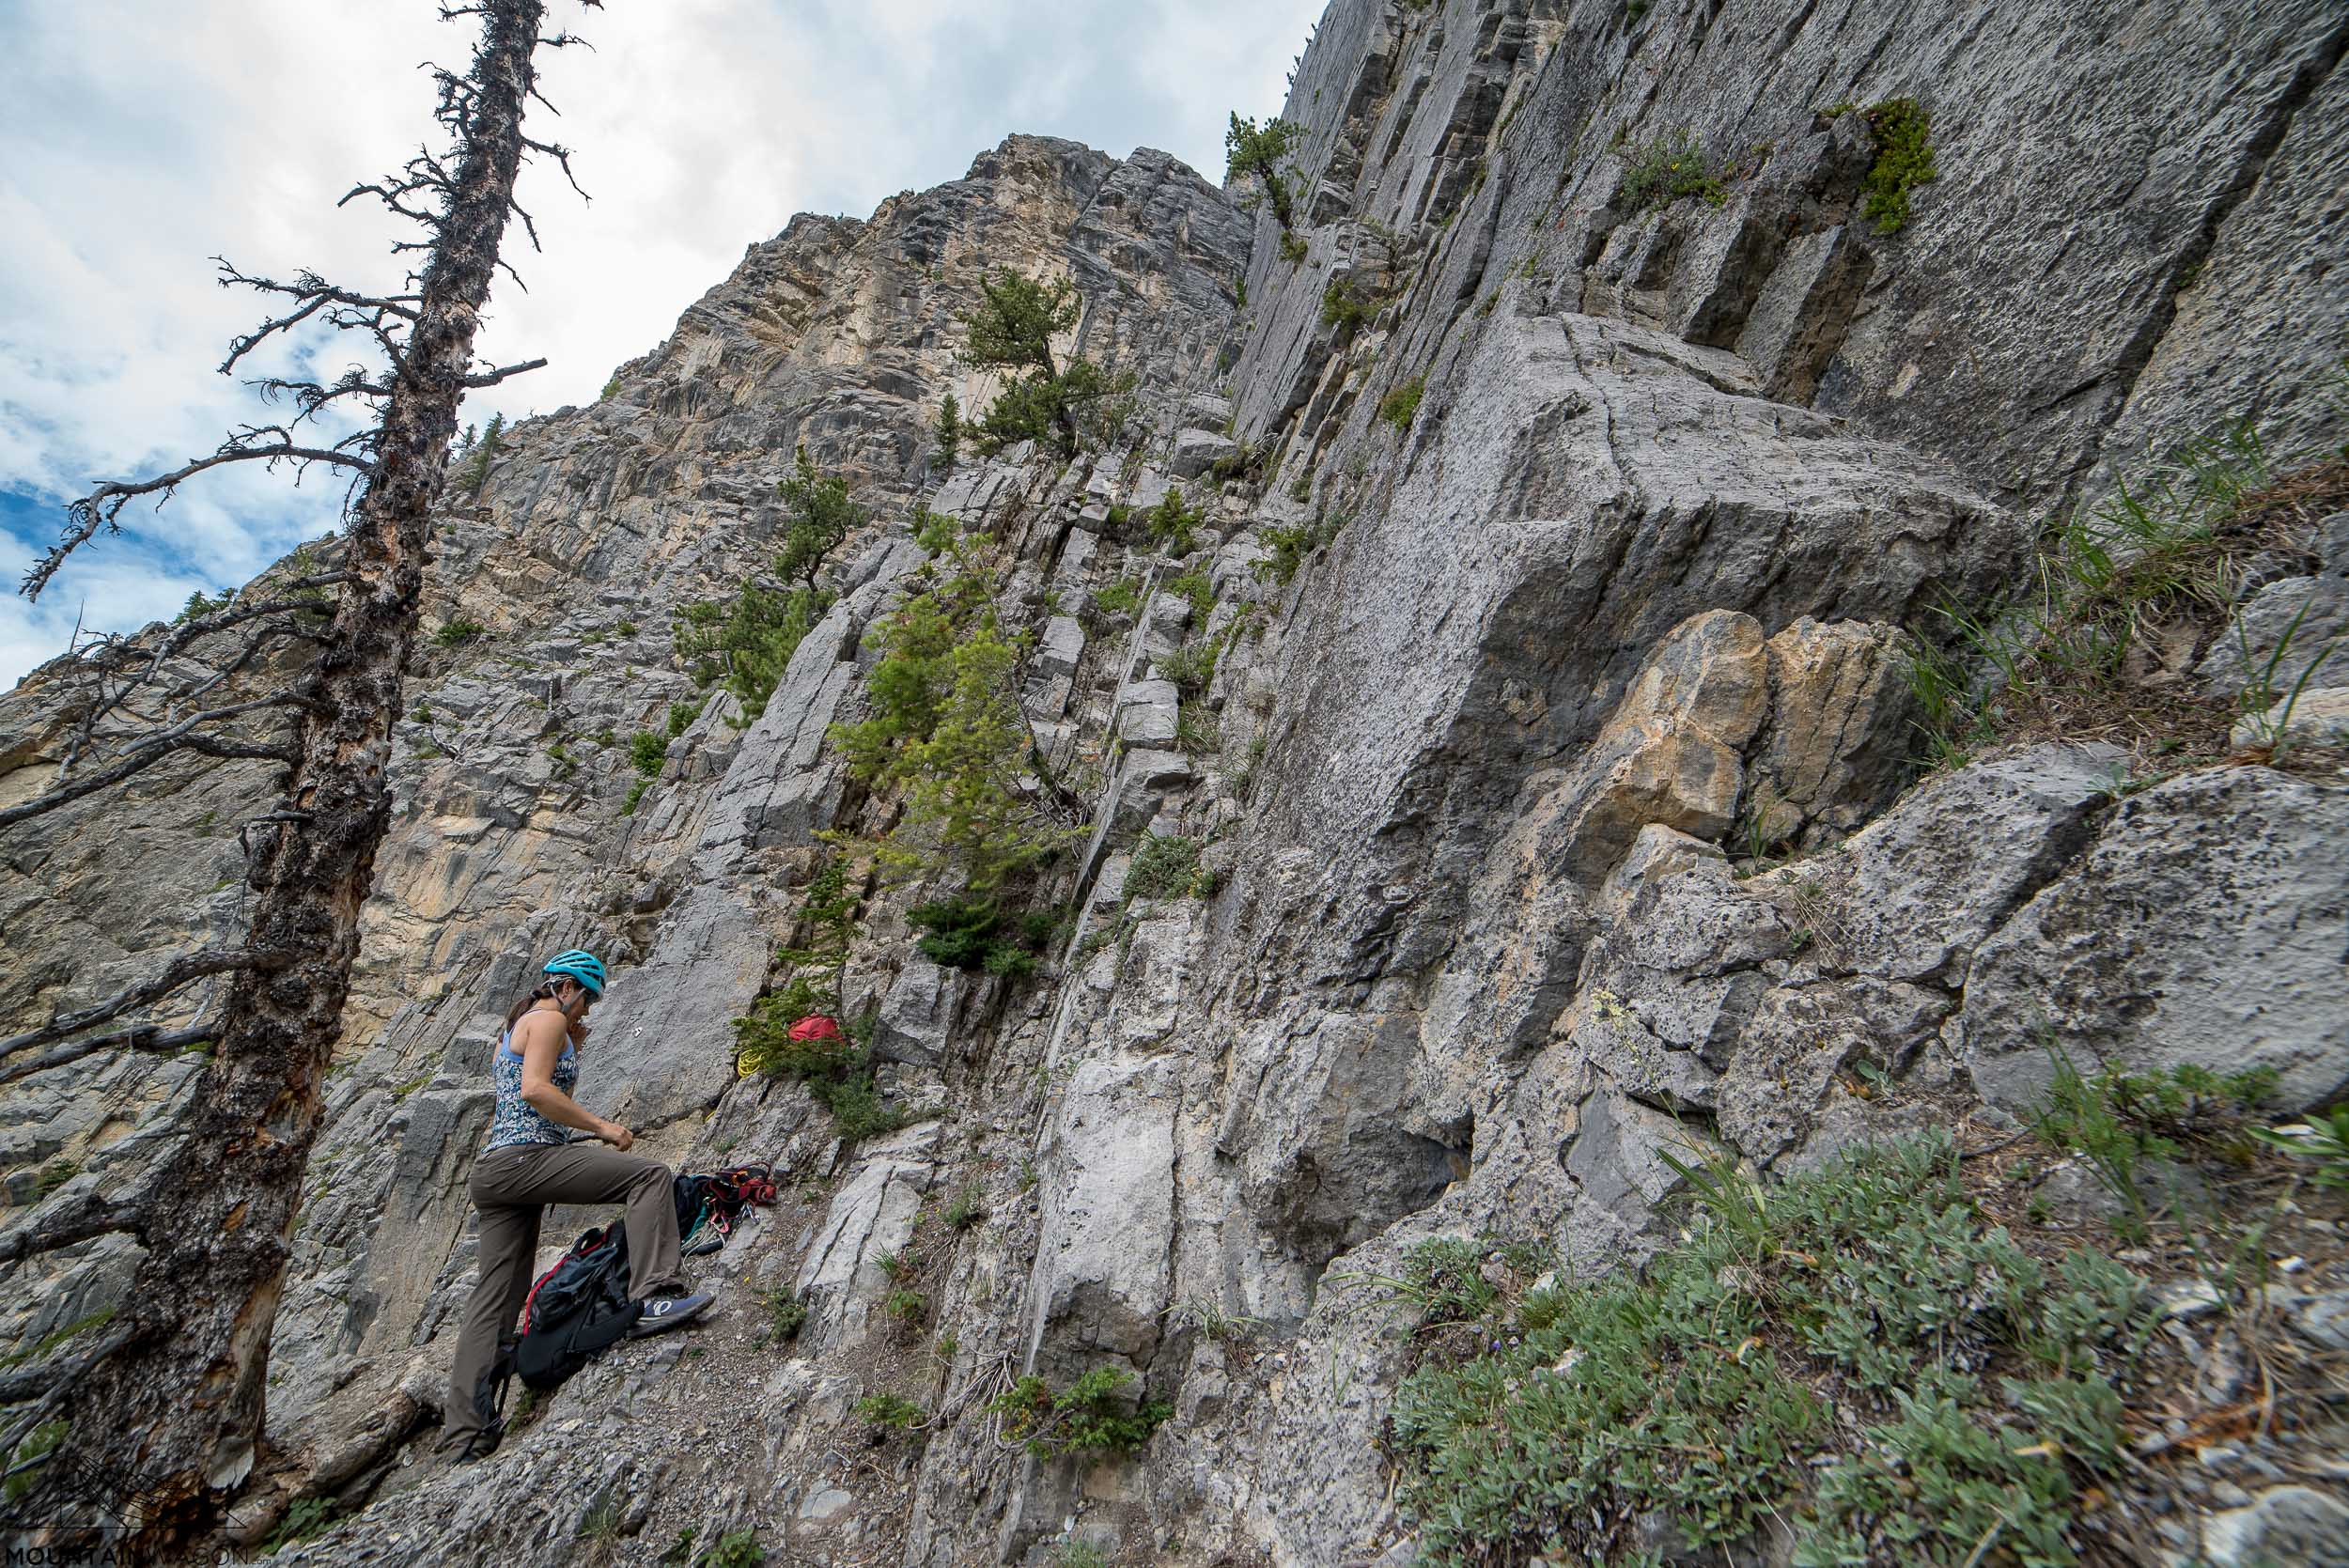 The bottom of the route can be identified by the dead tree and the belay bolt just behind Chrisitne